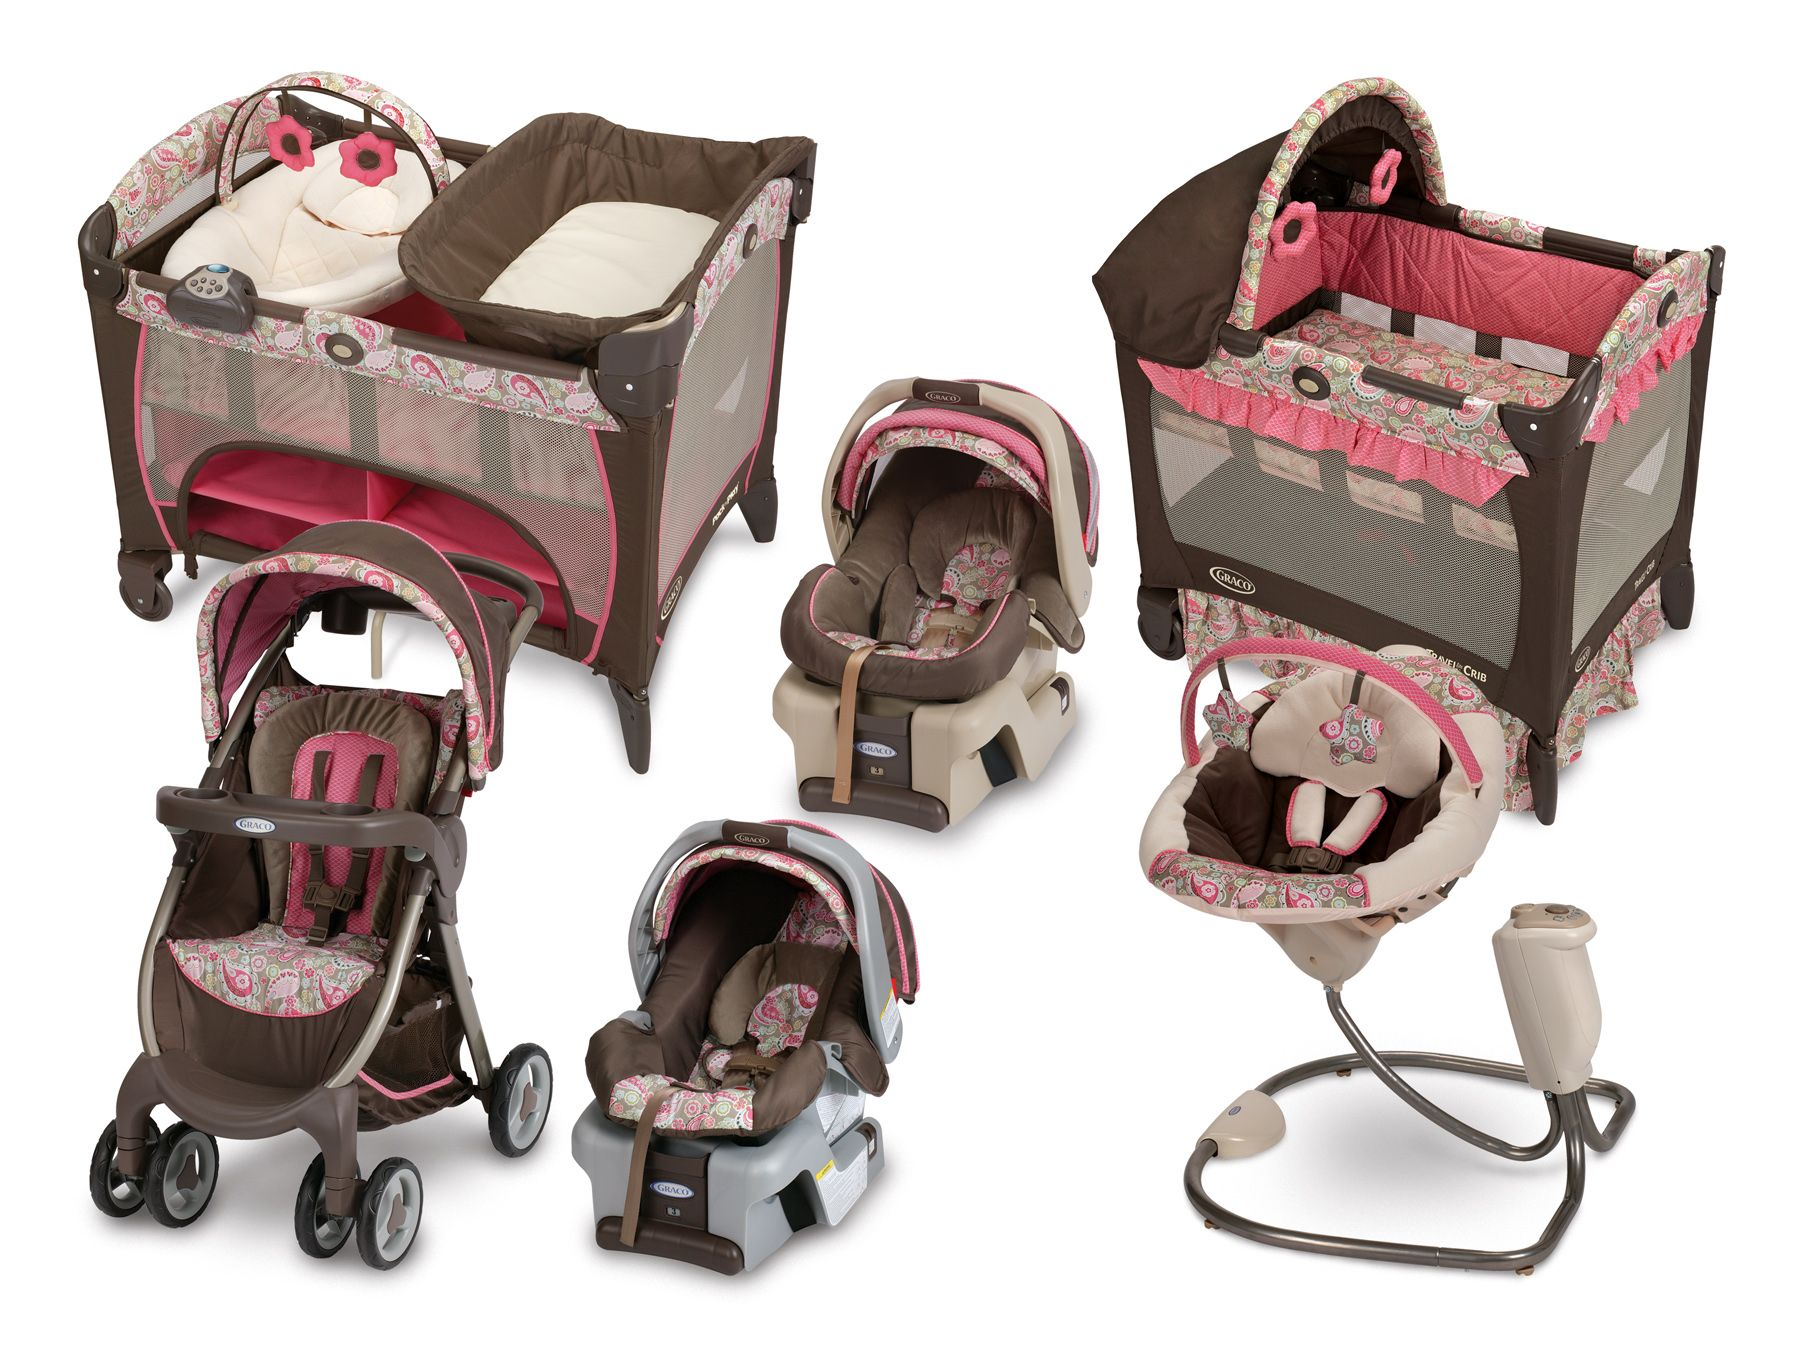 Graco Jacqueline Collection Braelynn s set registered for the travel pack play swing stroller car seat